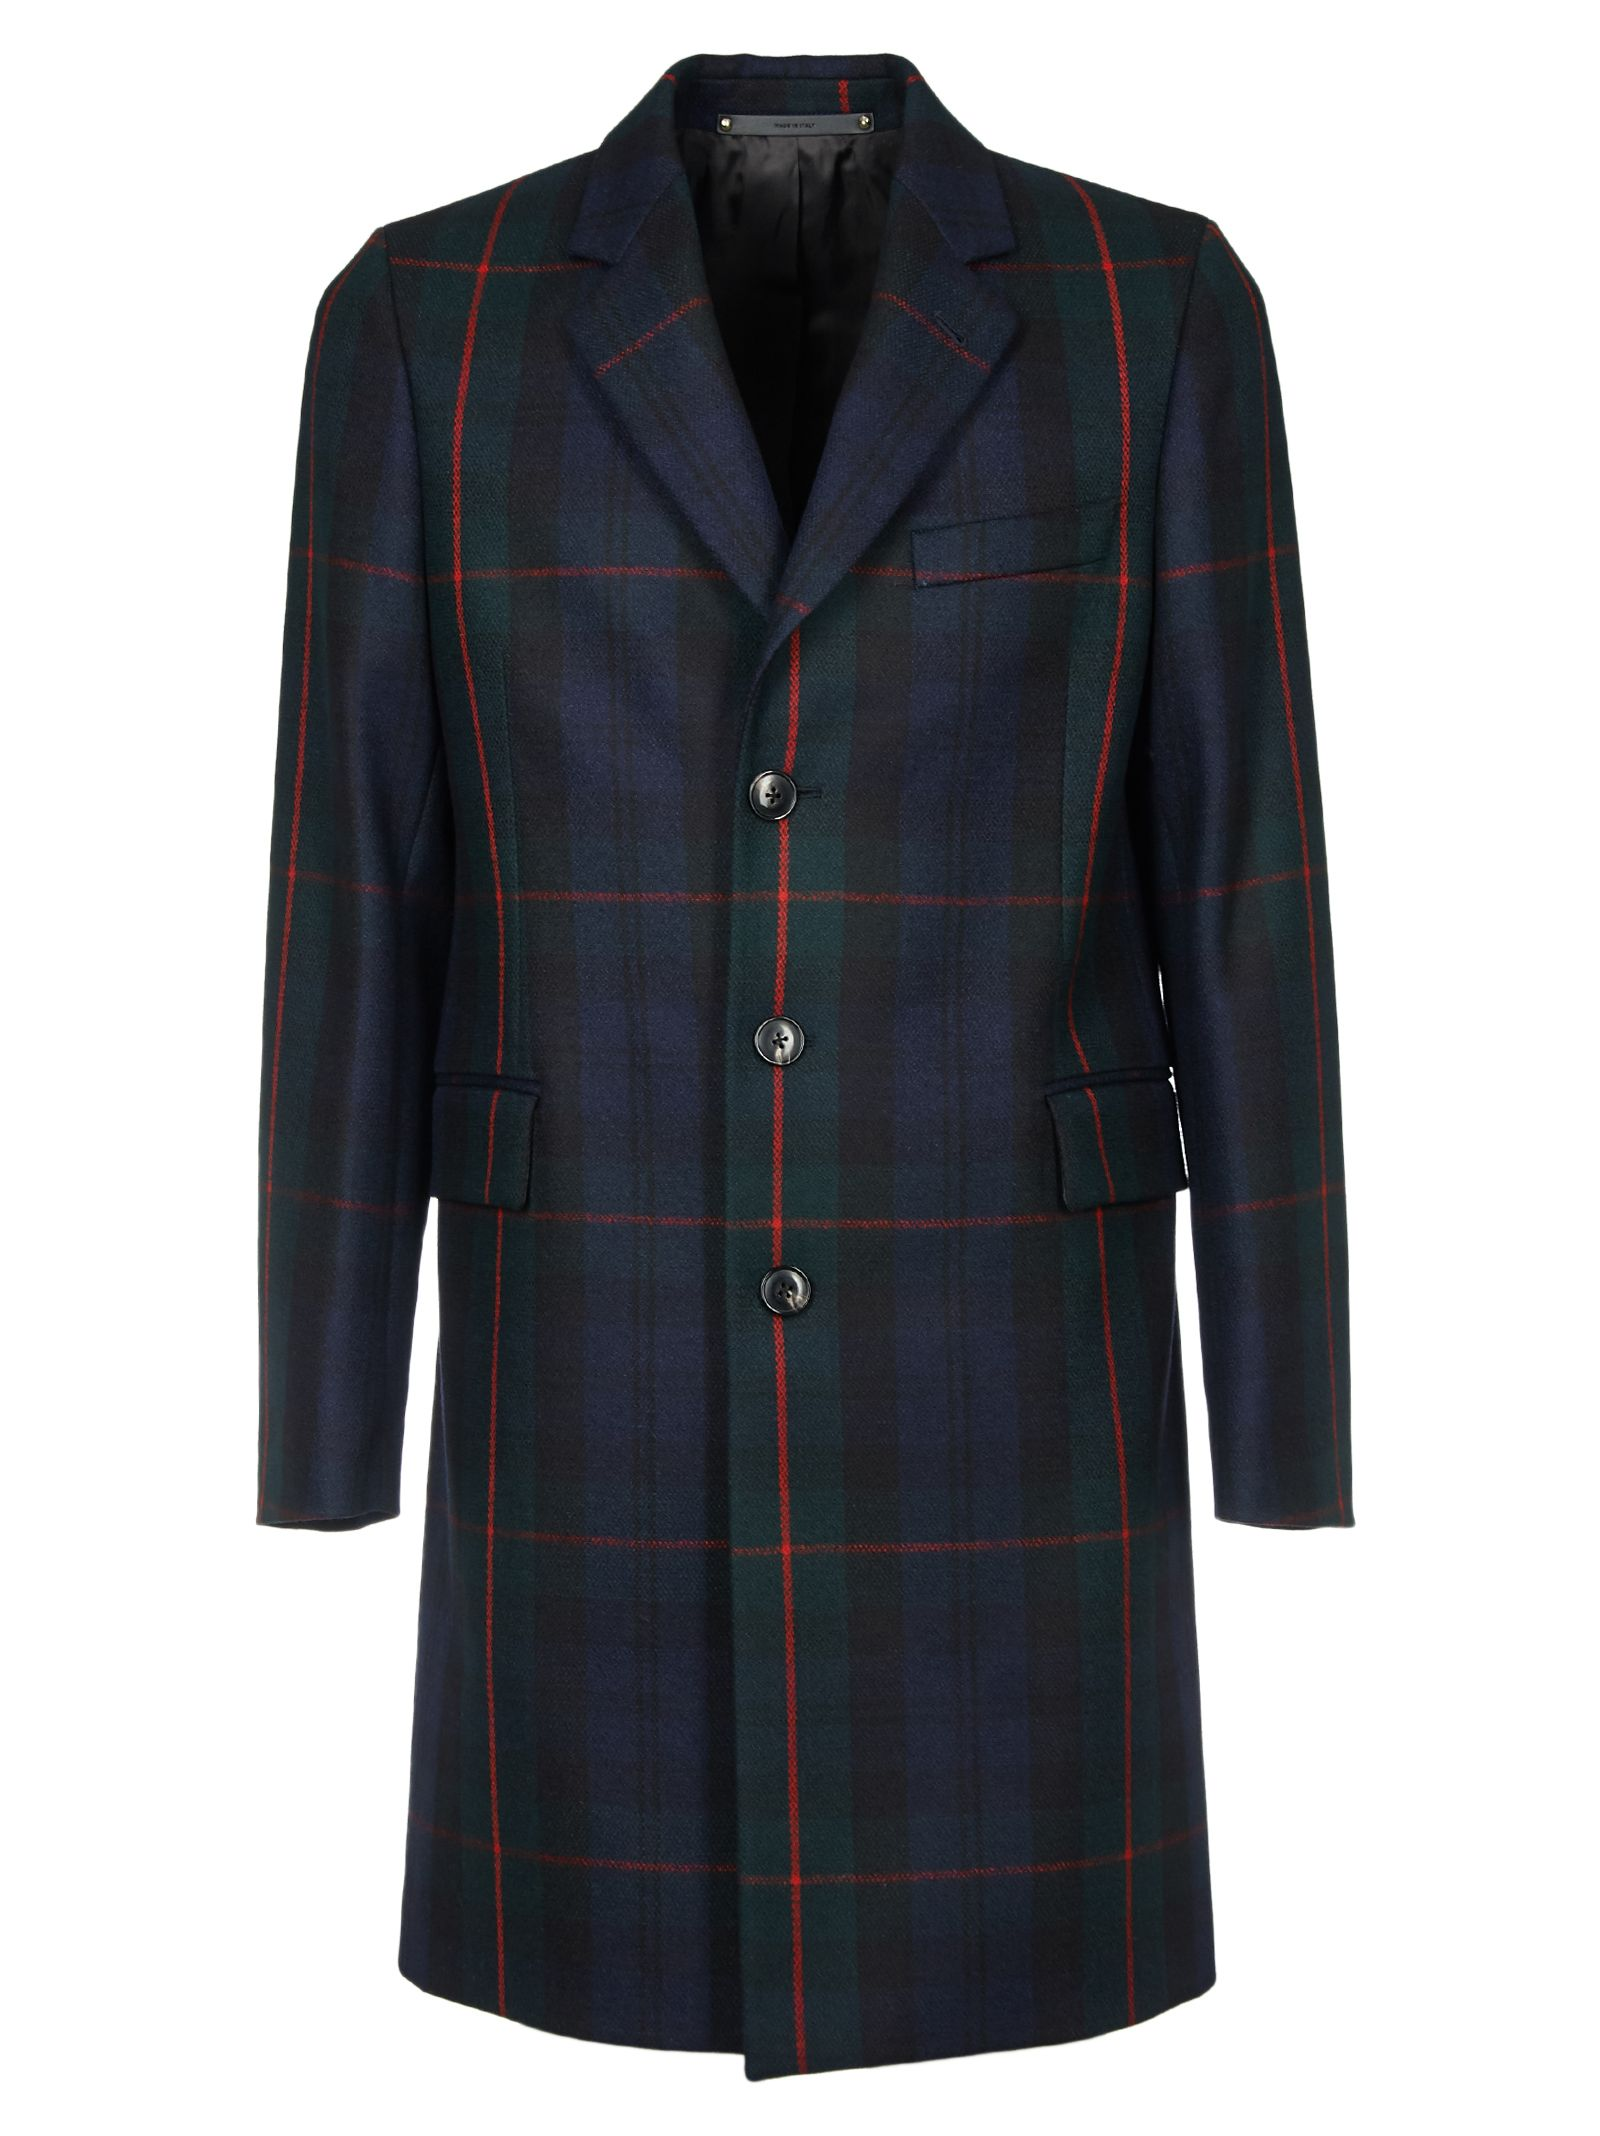 Paul Smith Patterned Coat